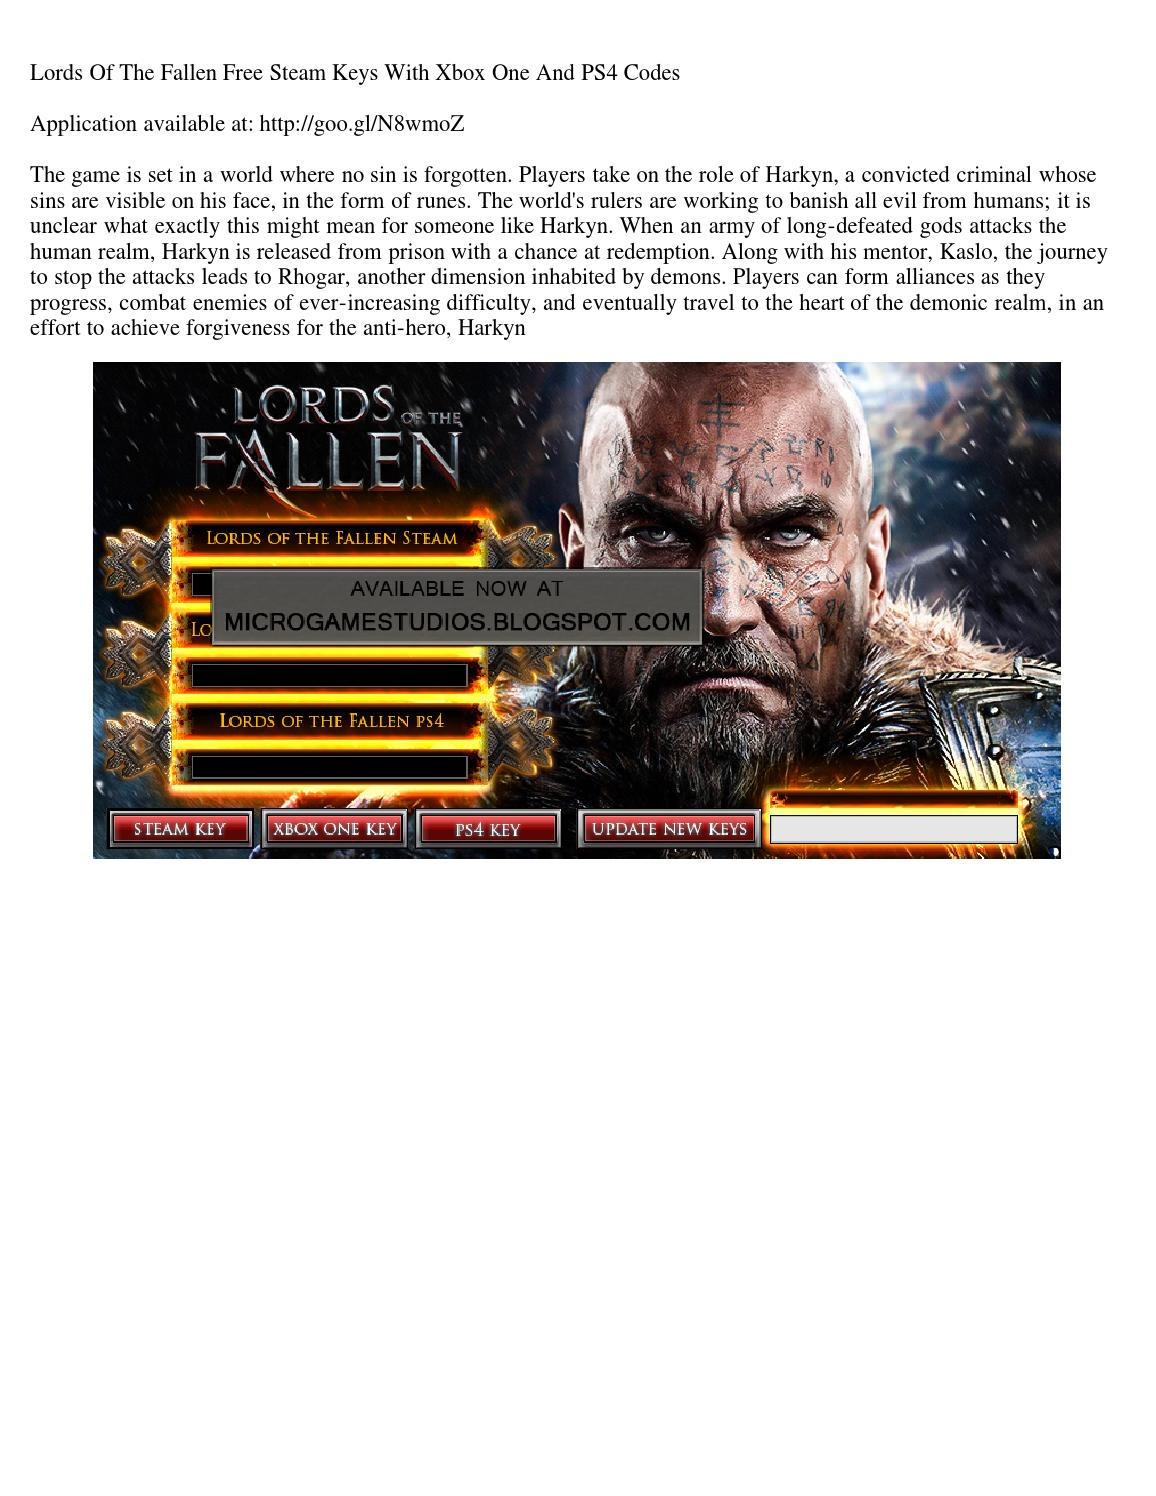 Lords of the fallen free steam keys with xbox one and ps4